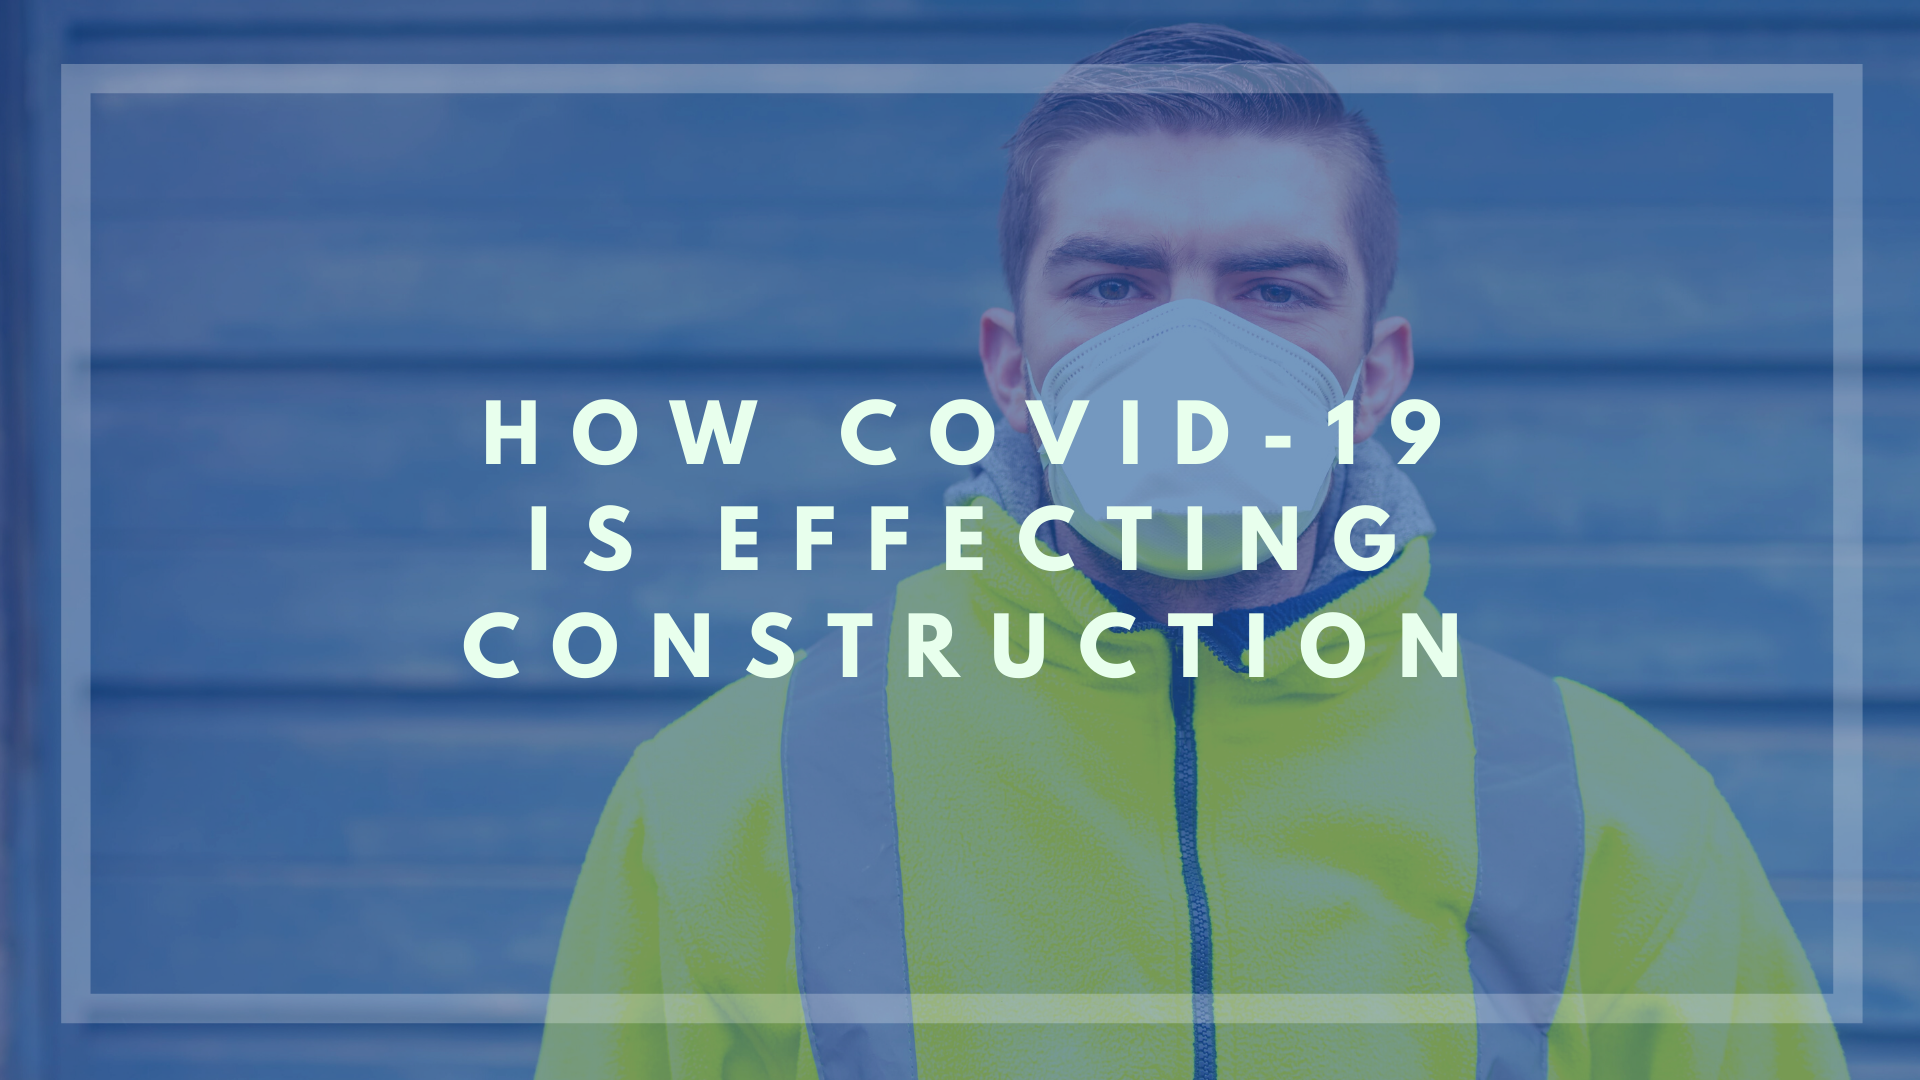 How COVID-19 is Effecting Construction